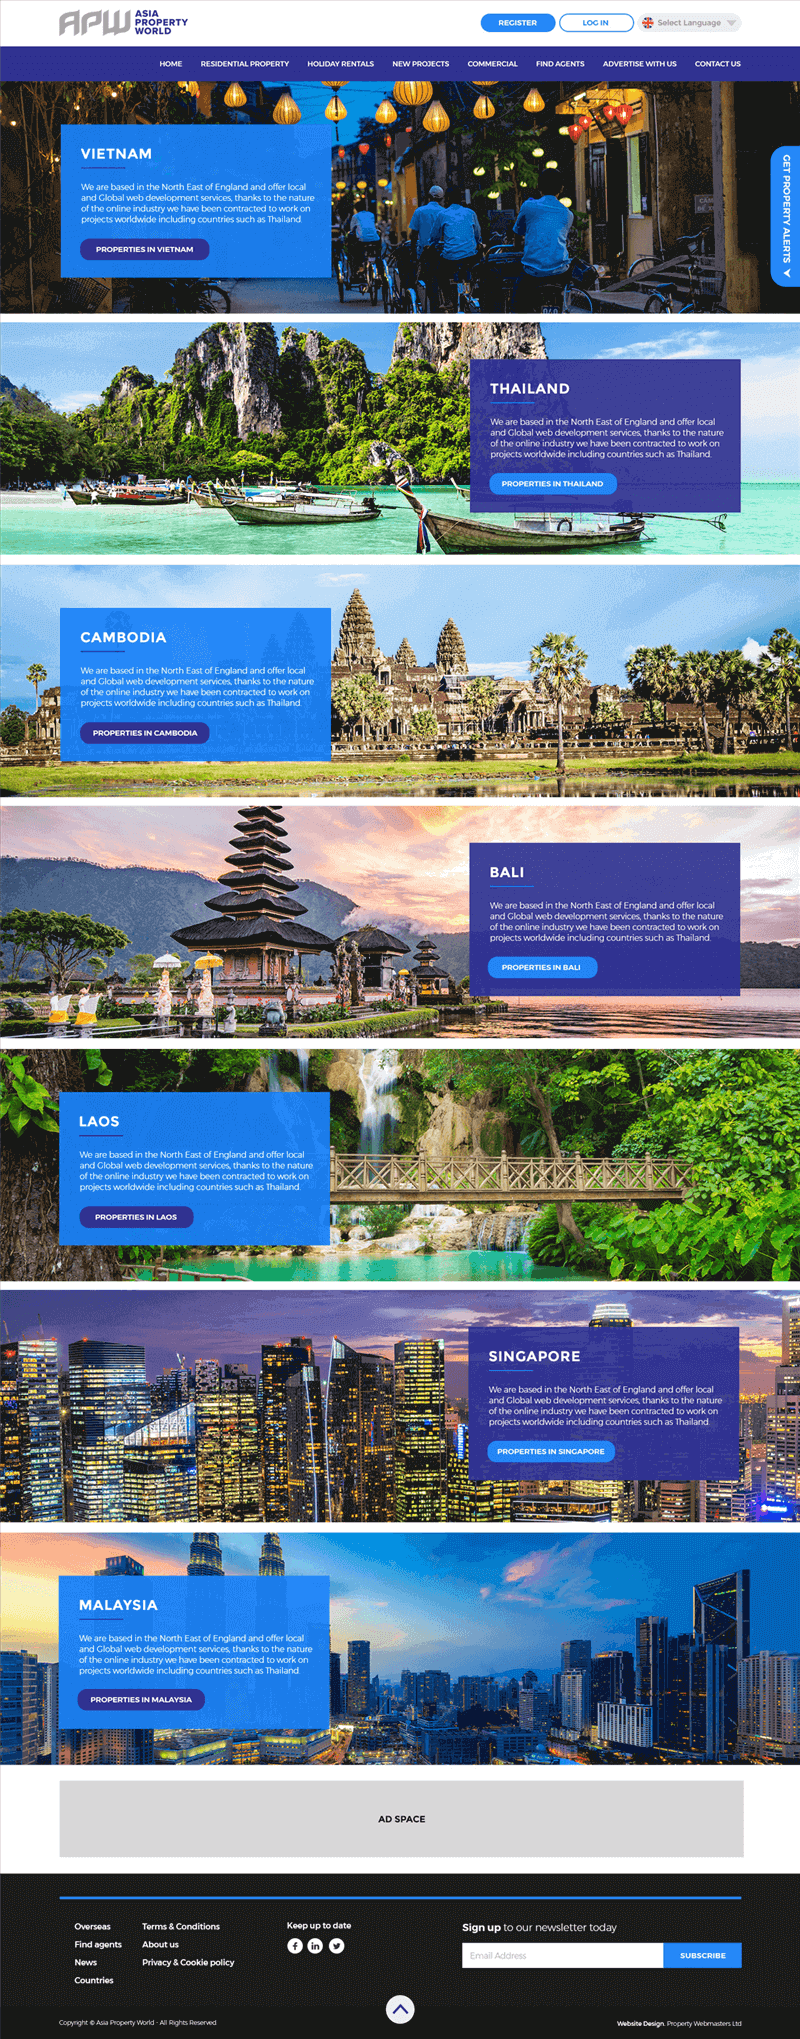 WELL ESTABLISHED PROPERTY WEBSITE IN ASIA WITH LARGE LISTINGS